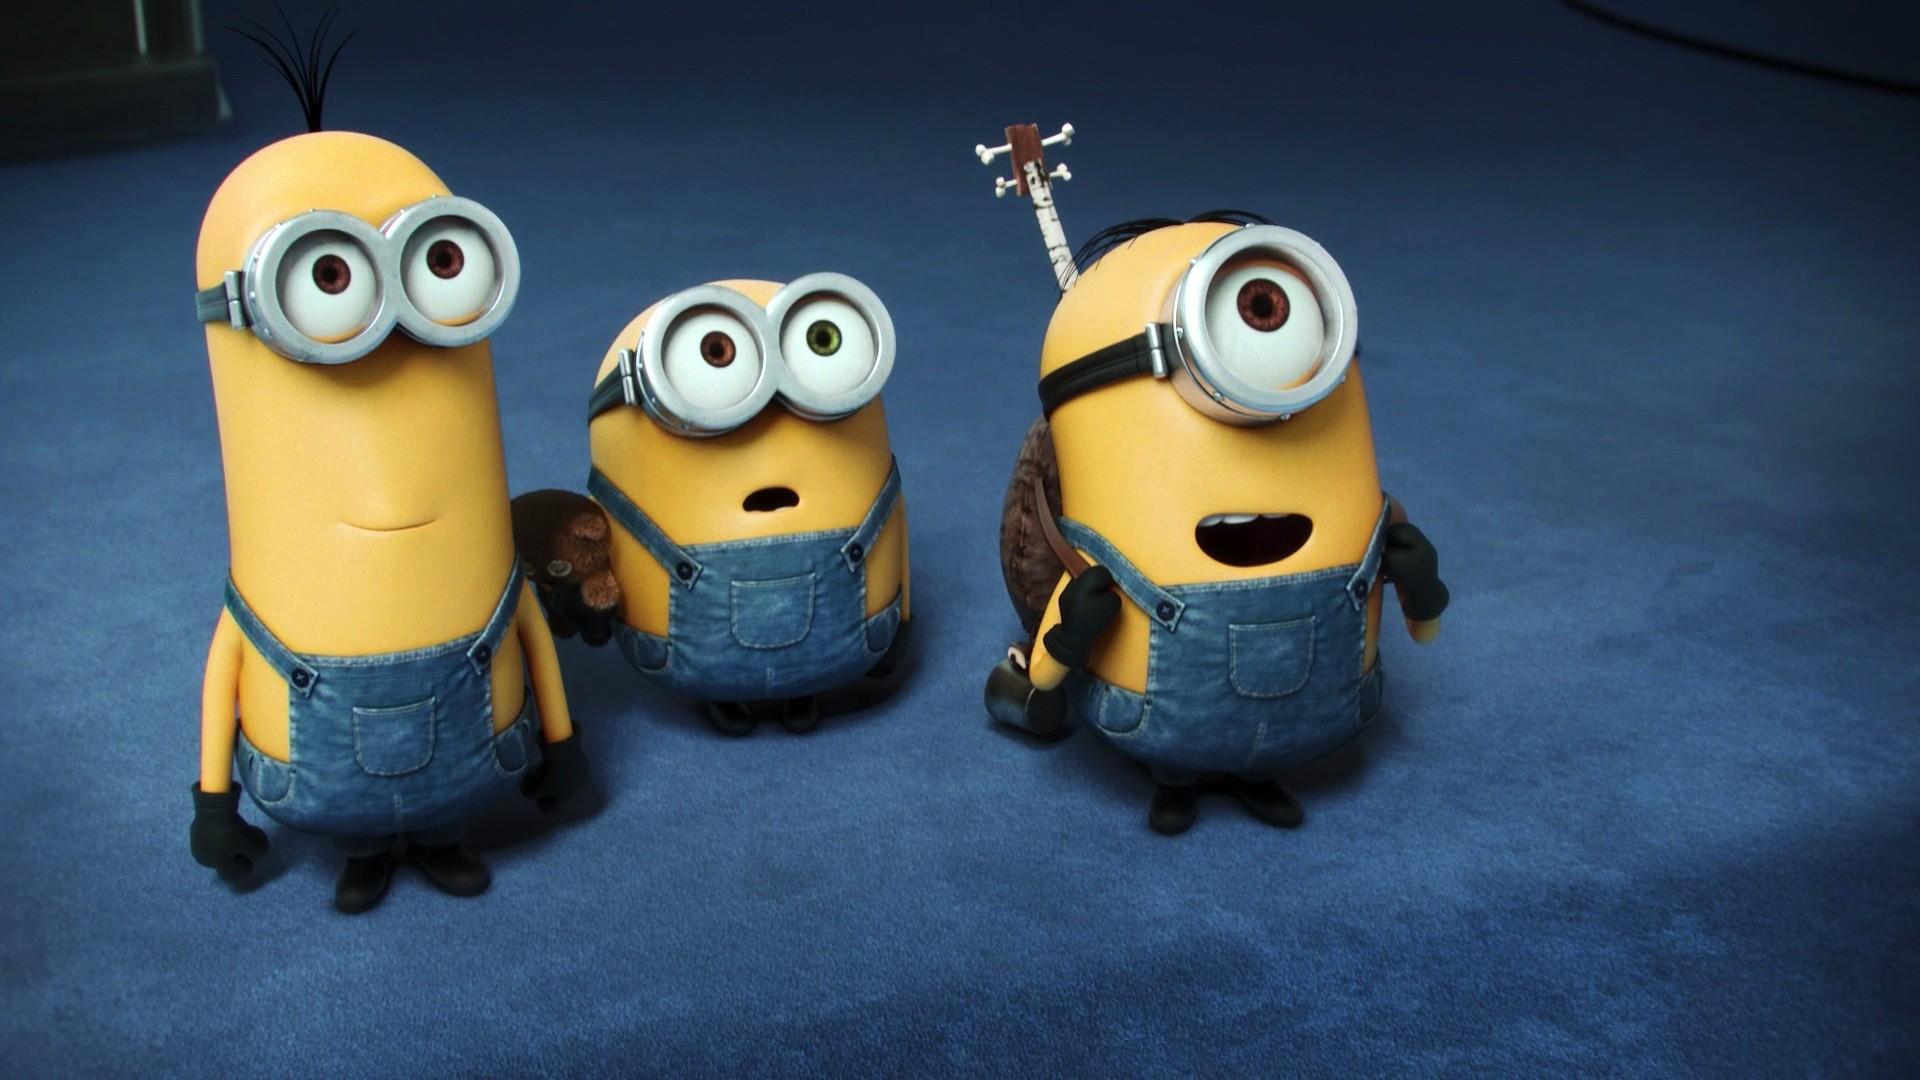 1920x1080 Minions Theme Song | Movie Theme Songs & TV Soundtracks